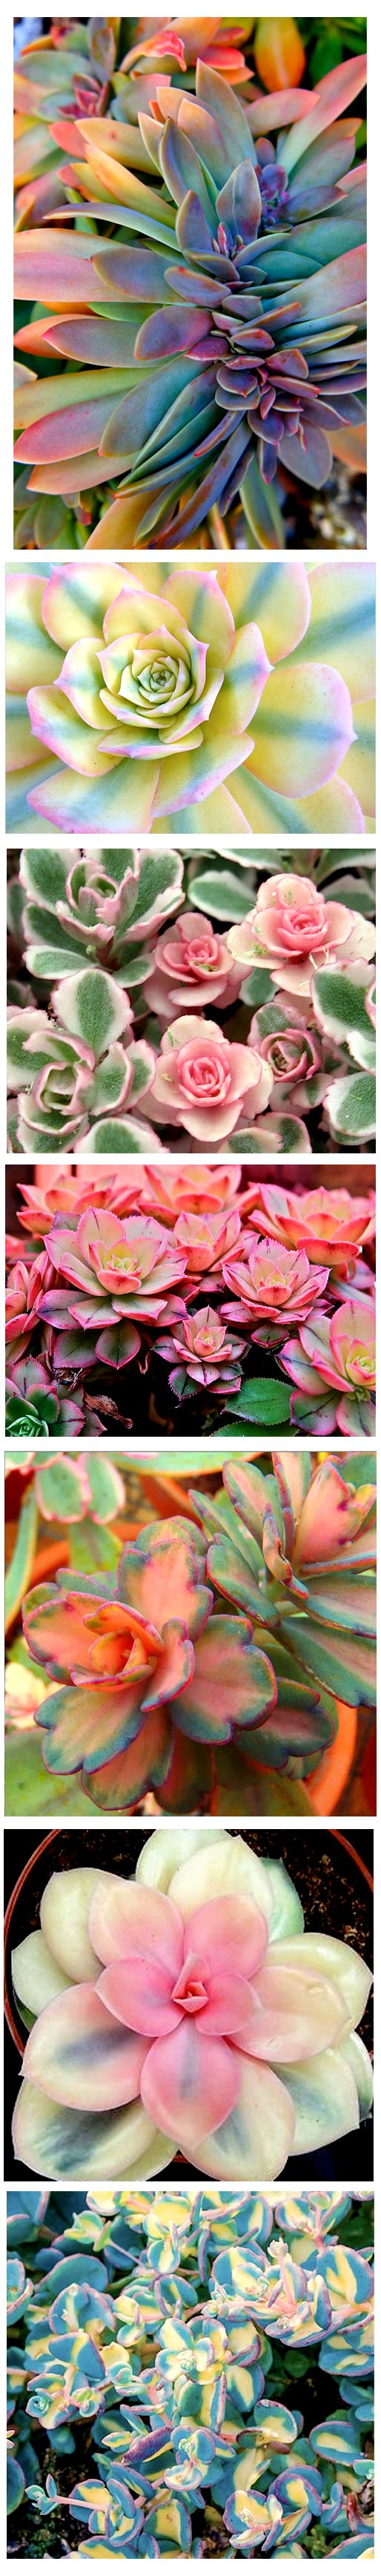 Variegated Succulents